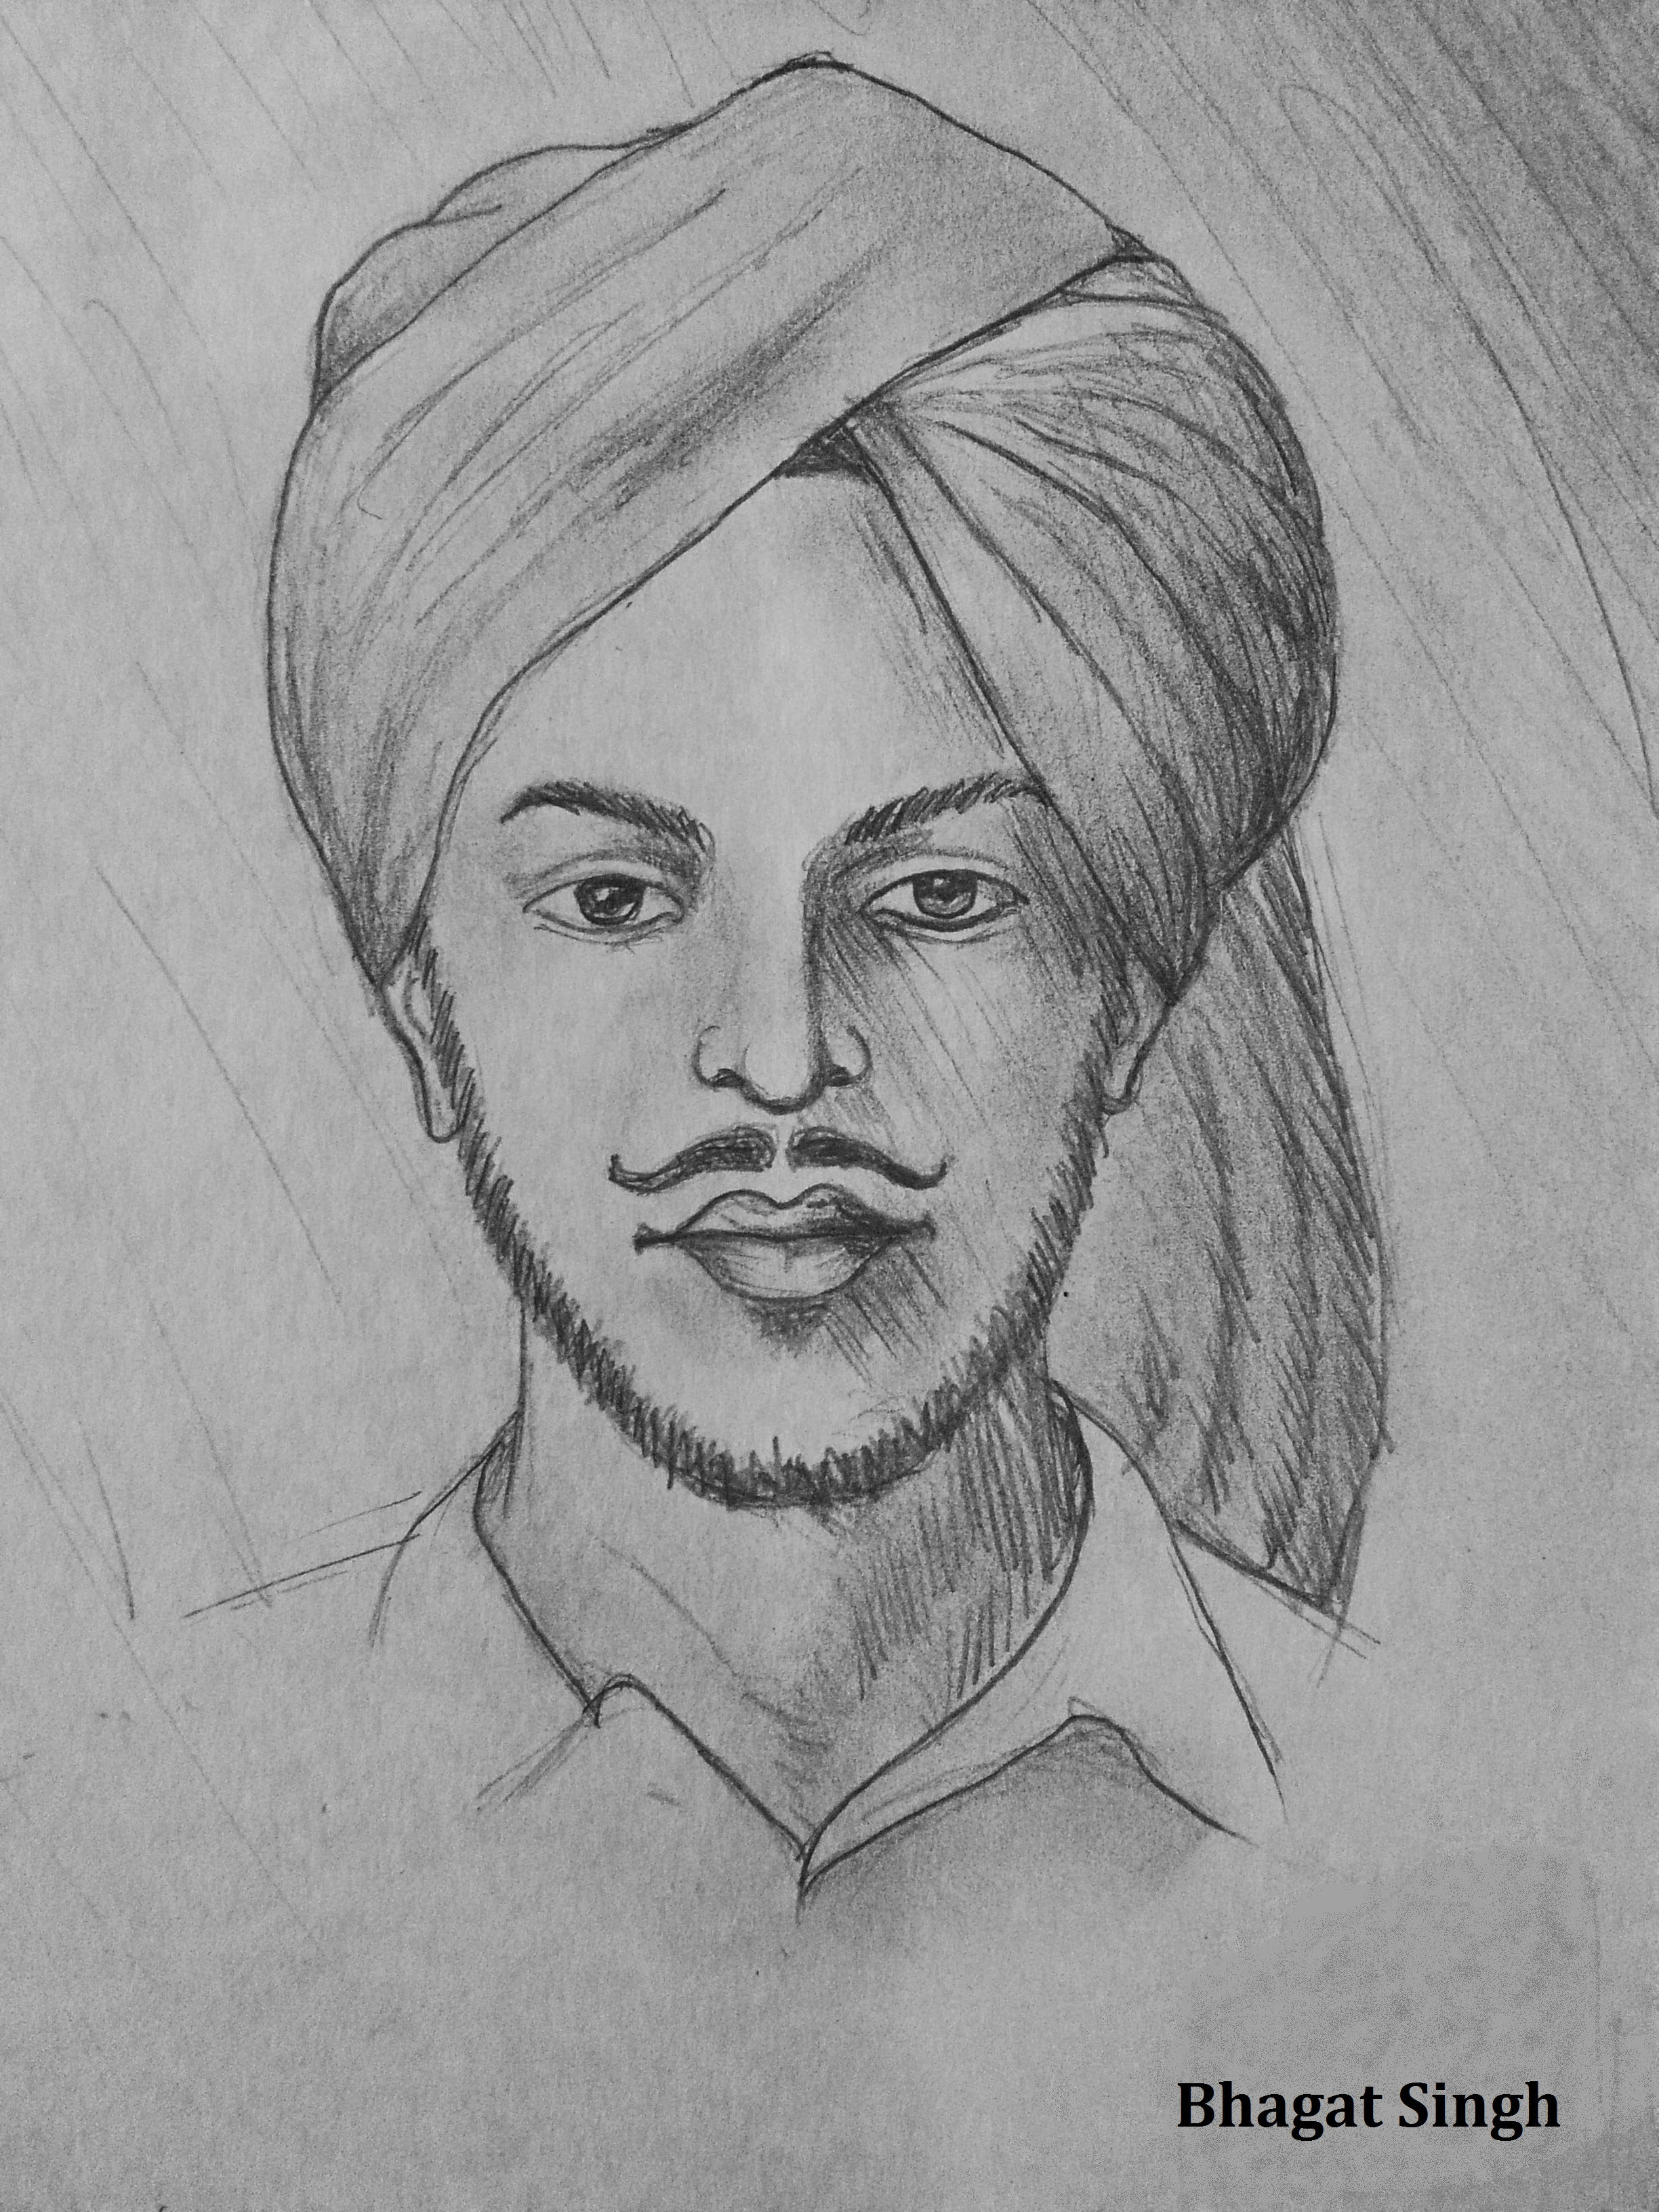 sketch of shaheed bhagat singh is in image. he tie turan. sketch is made with pencil.